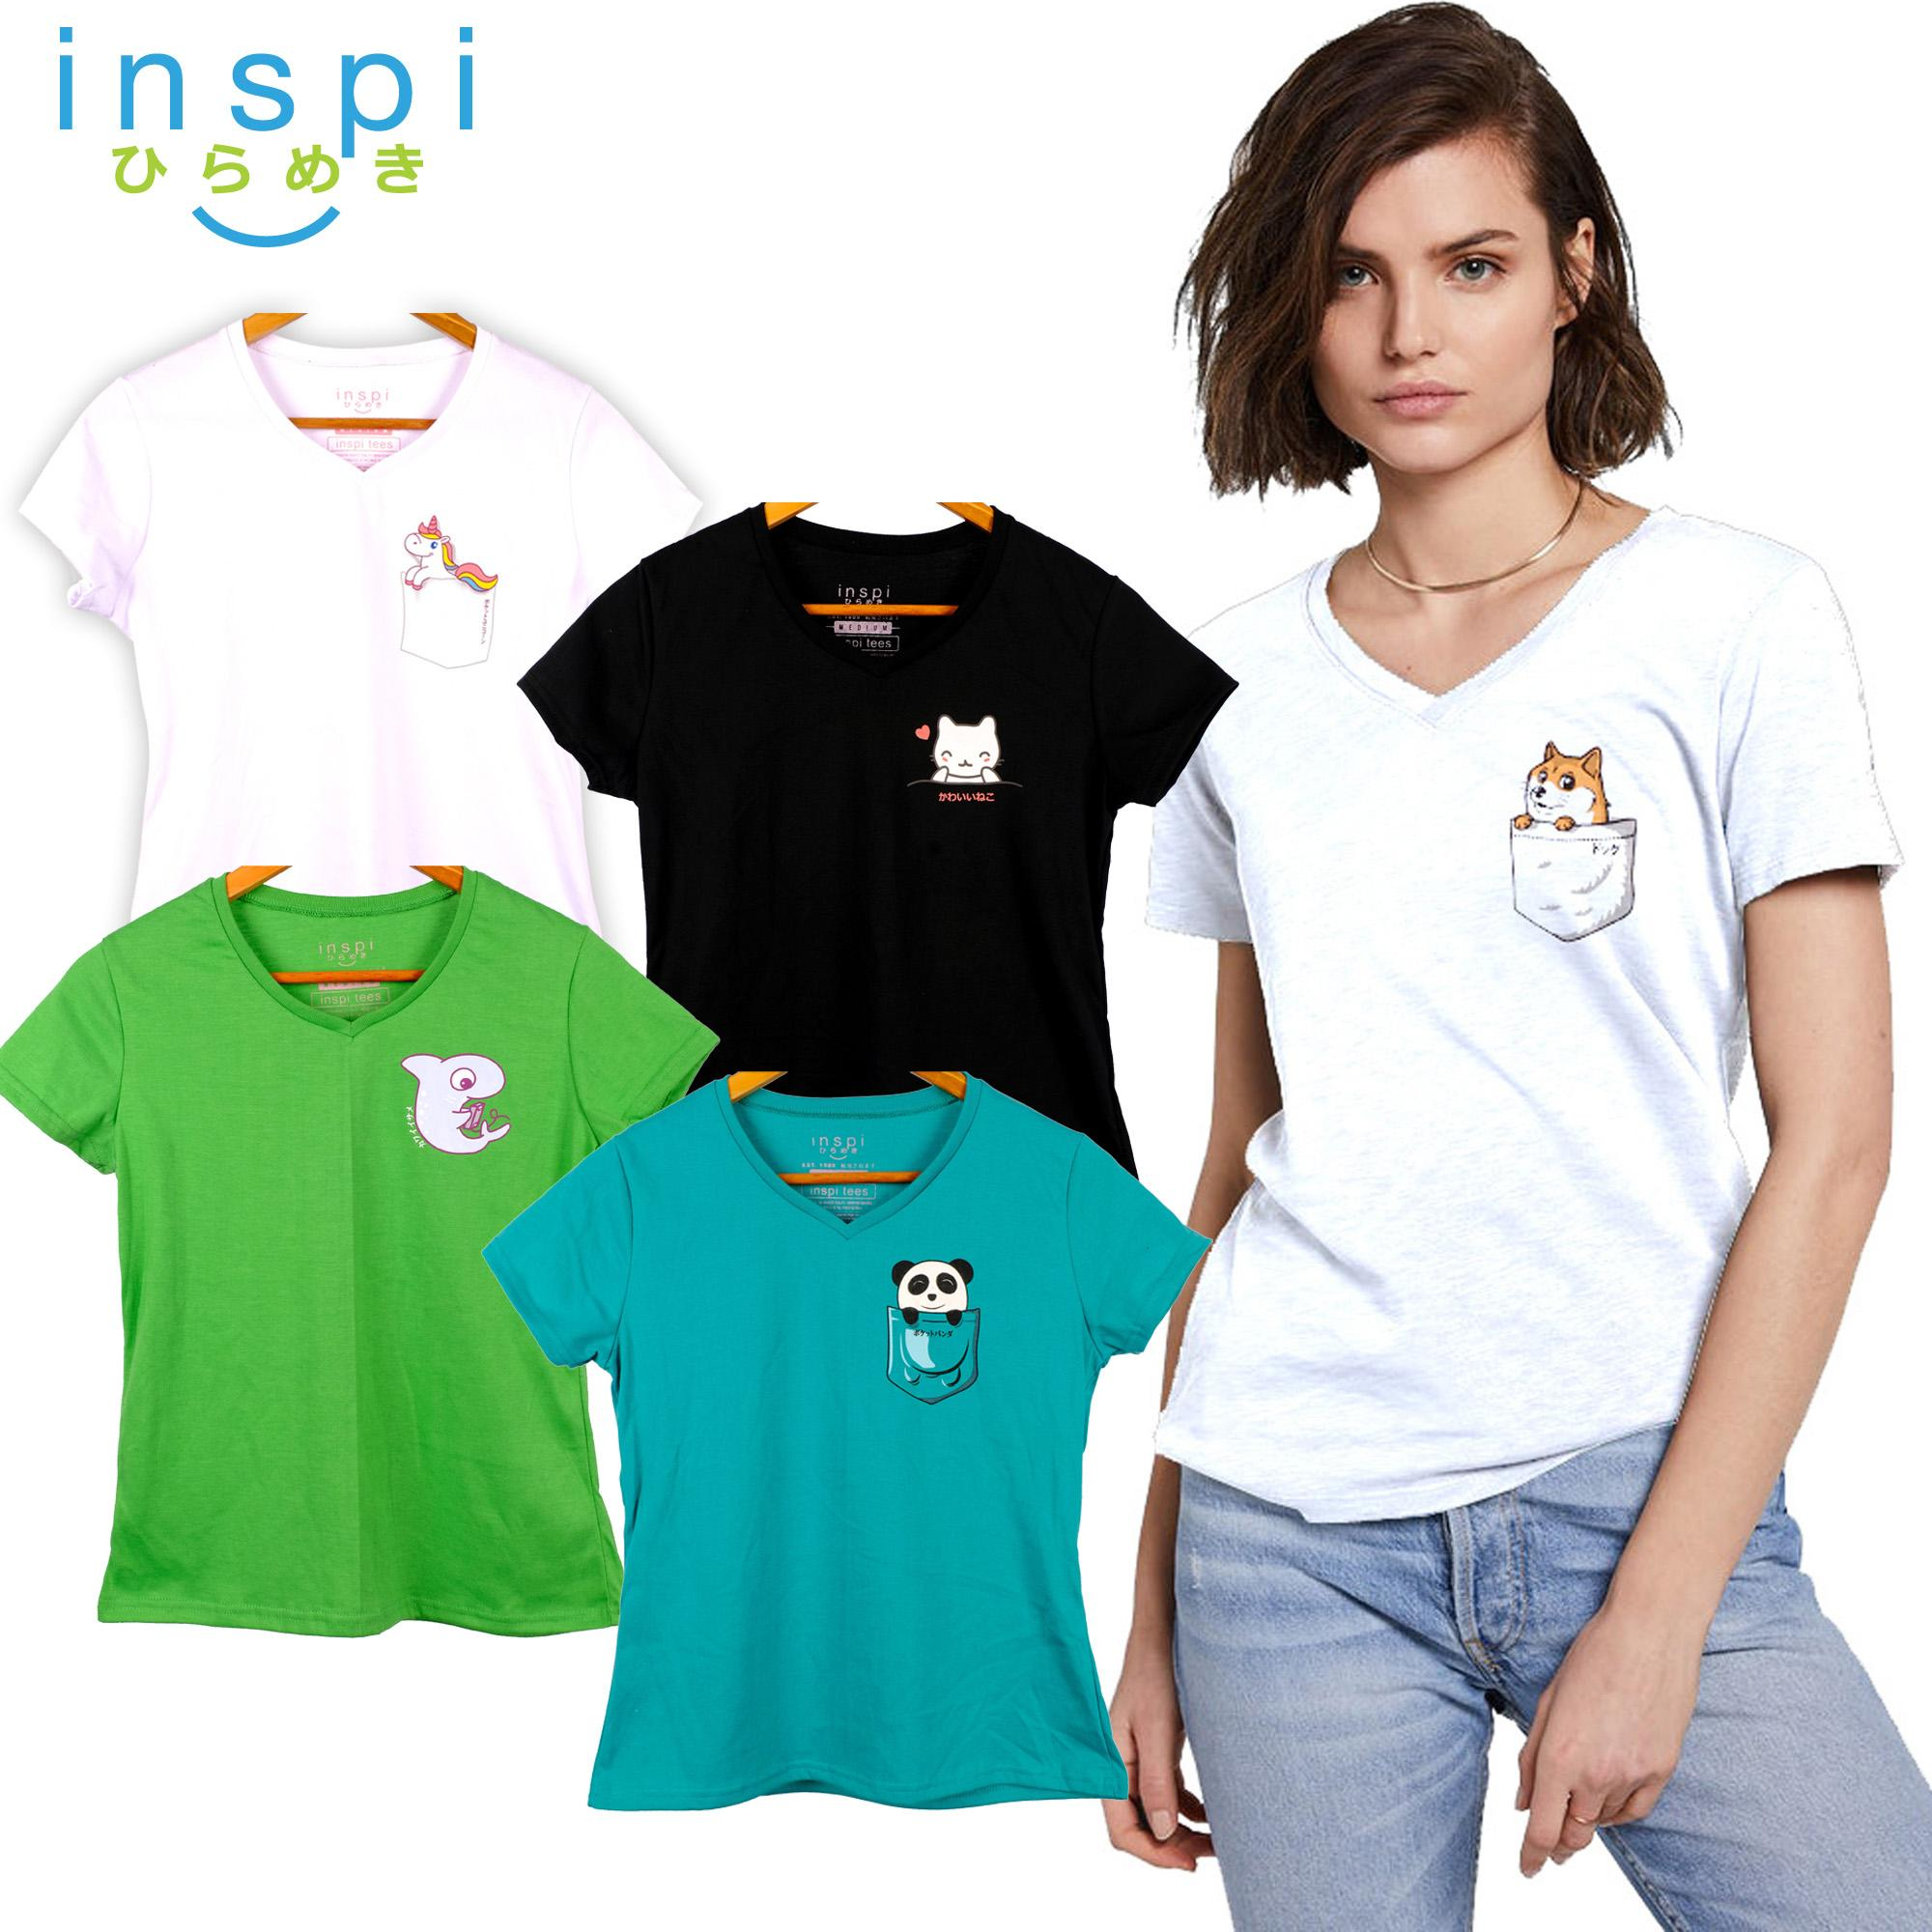 3e275b553d20 INSPI Tees Ladies Semi Fit Pocket Friends Collection tshirt printed graphic  tee t shirt shirts tshirts